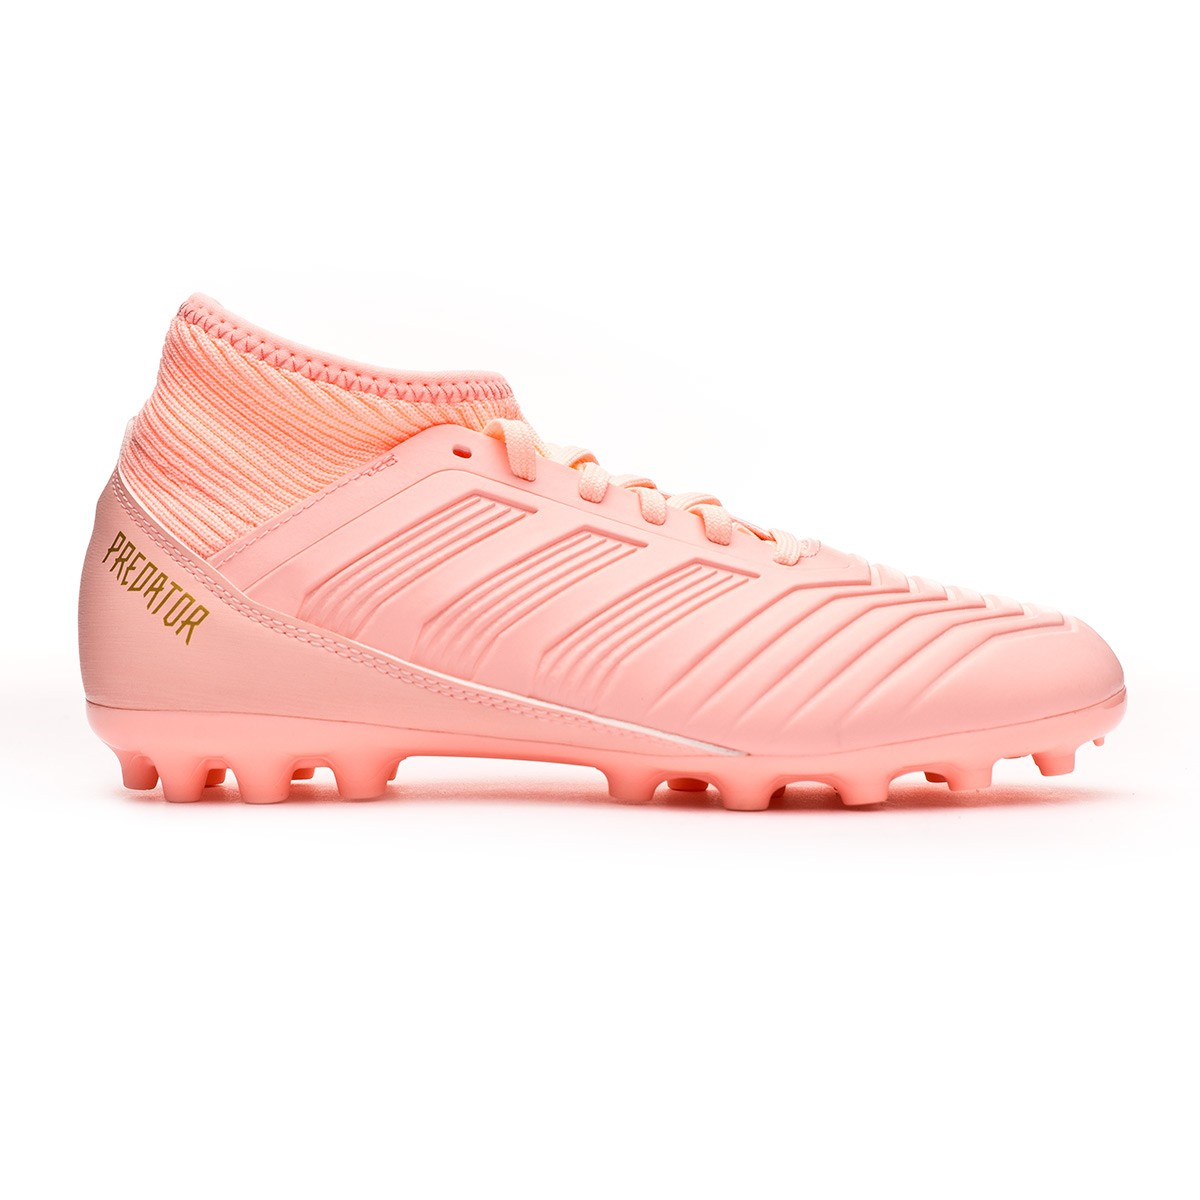 c40f1114628b ... football boots pd extra time 72325 919e6; denmark boot adidas kids predator  18.3 ag clear orange trace pink leaked 6045b 900d4